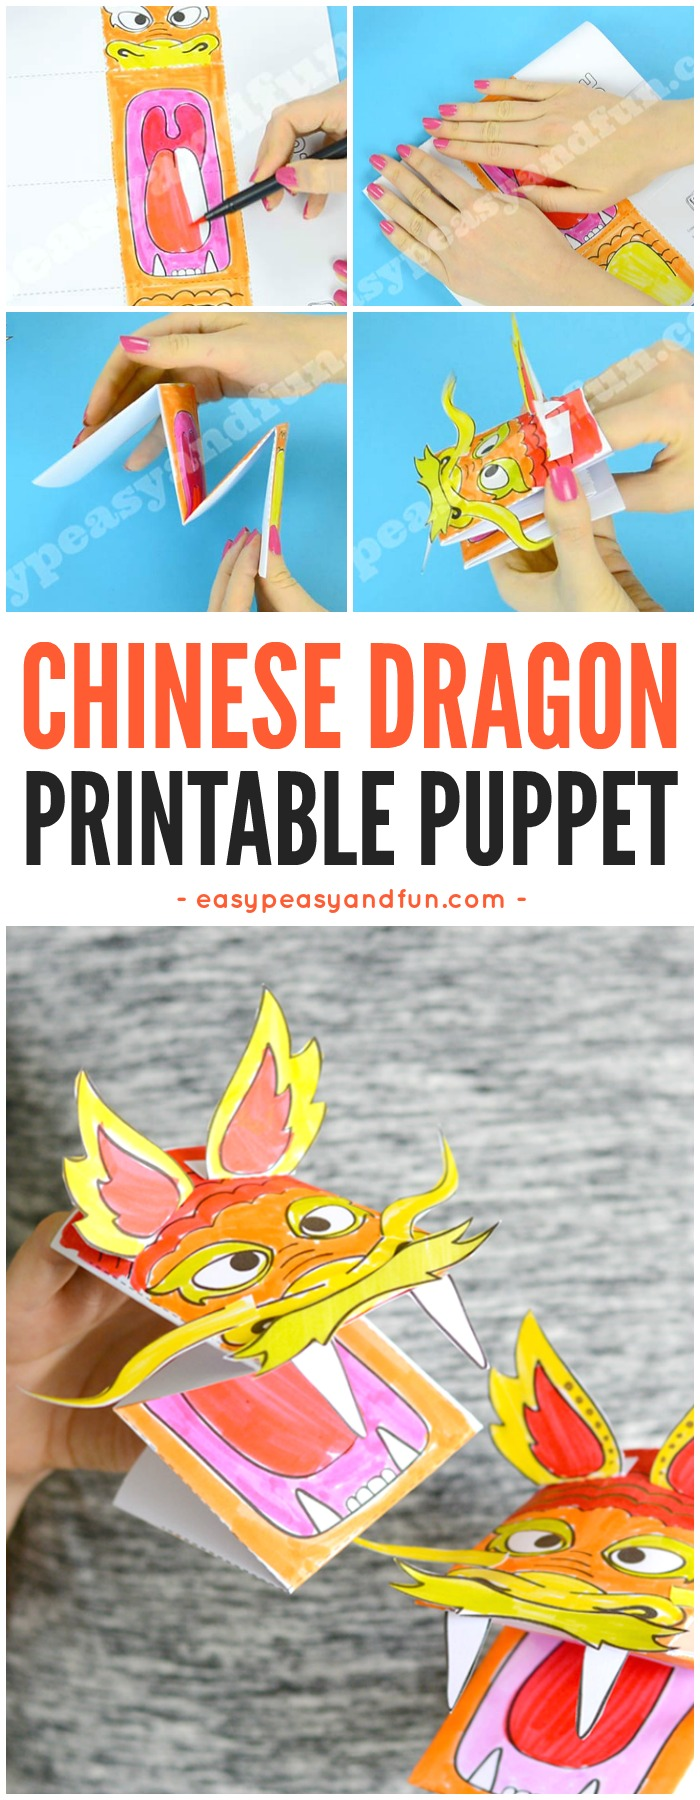 Printable Chinese Dragon Puppet Craft with Template. Fun Chinese New Year Craft for Kids to Make. #Chinesenewyearcrafts #printablepuppet #papercraftsforkids